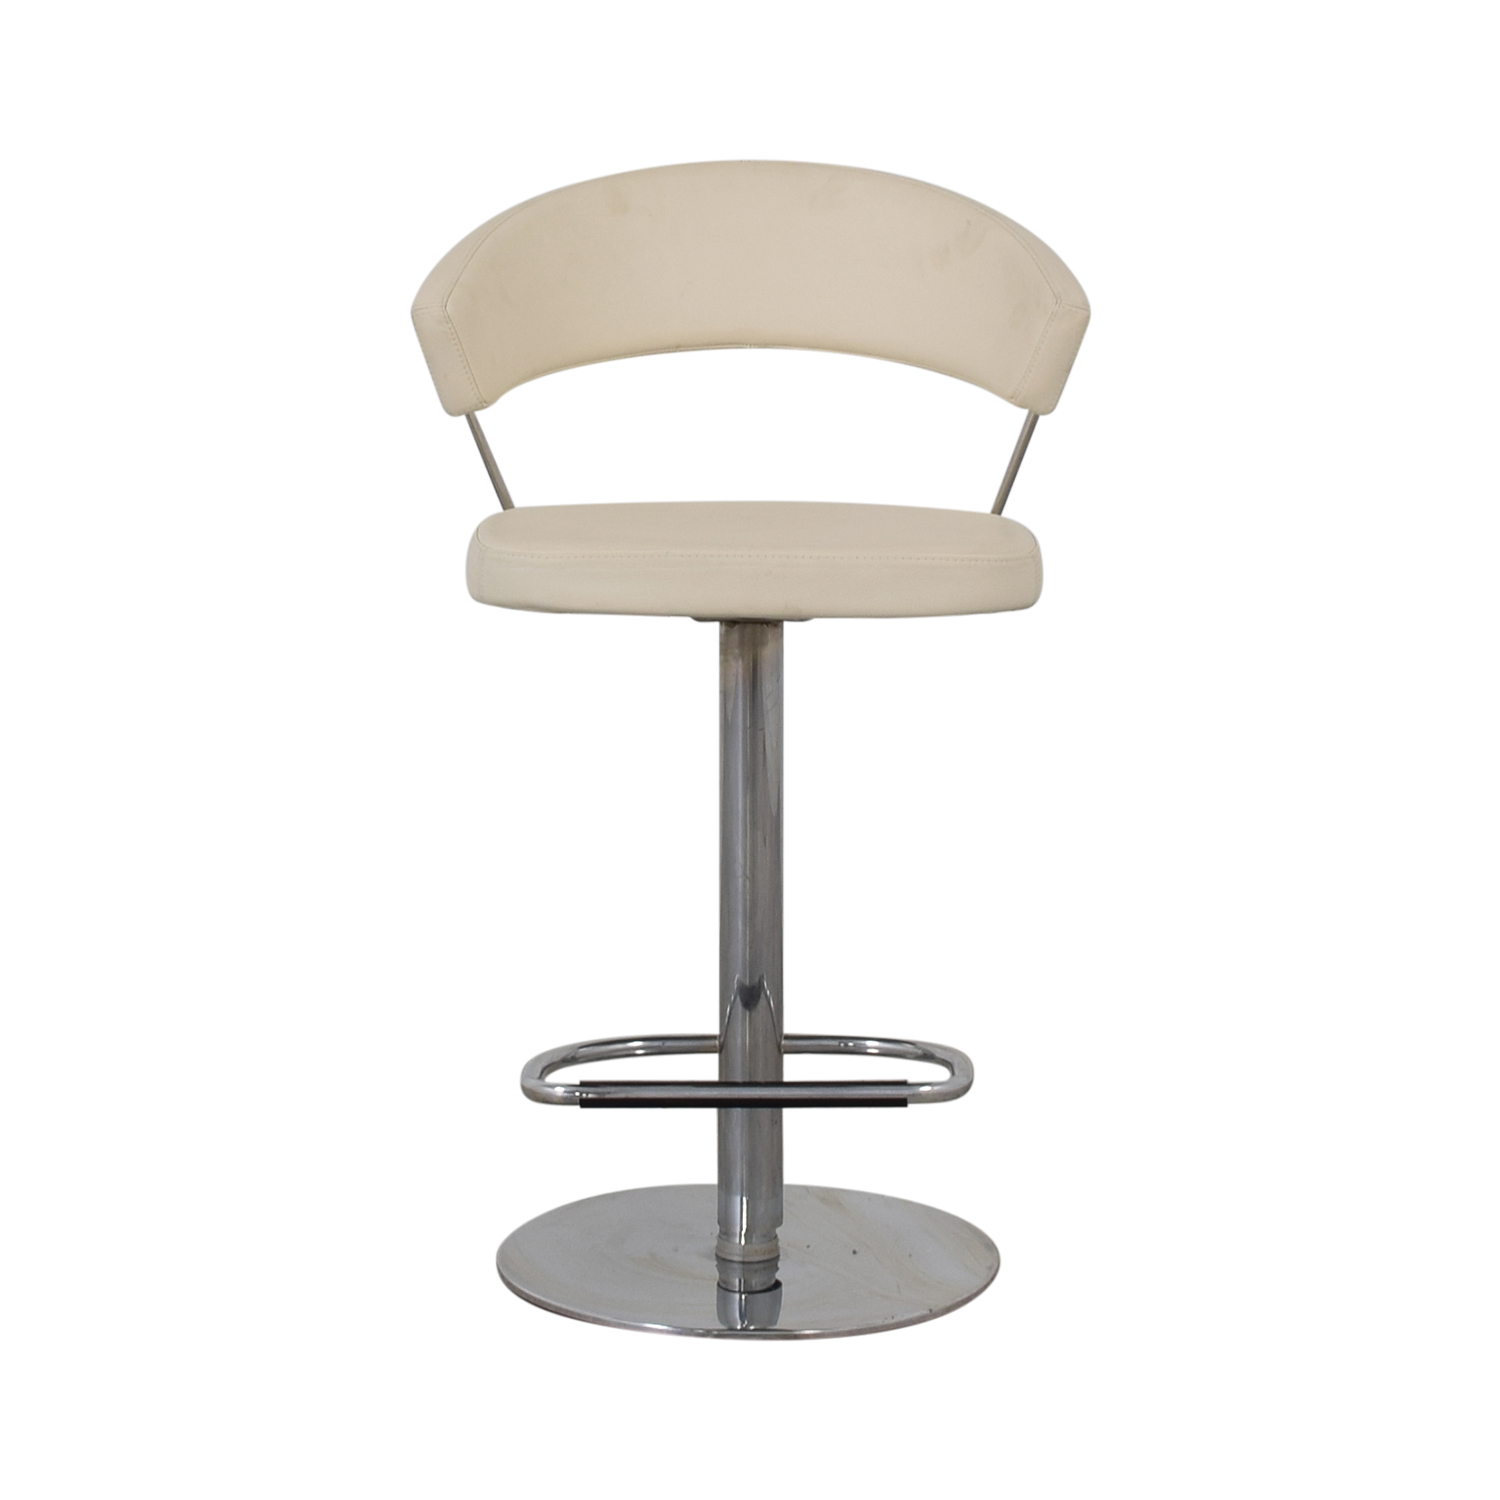 Calligaris Calligaris New York Adjustable Stool used